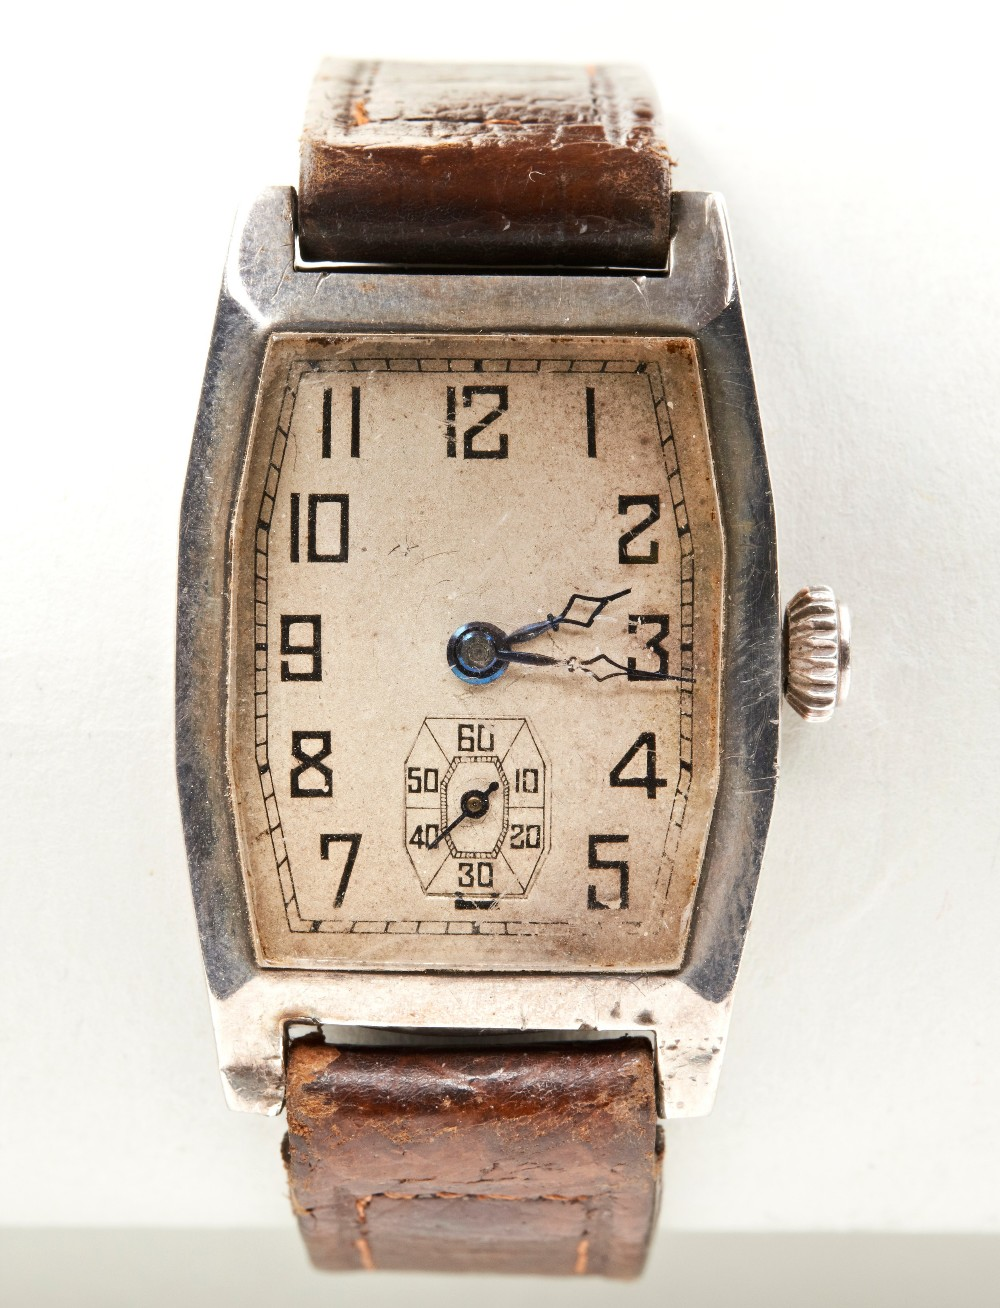 SWISS SILVER TONNEAU SHAPED MANUAL WRISTWATCH, c1915, the ?silver? dial with Arabic numerals, the